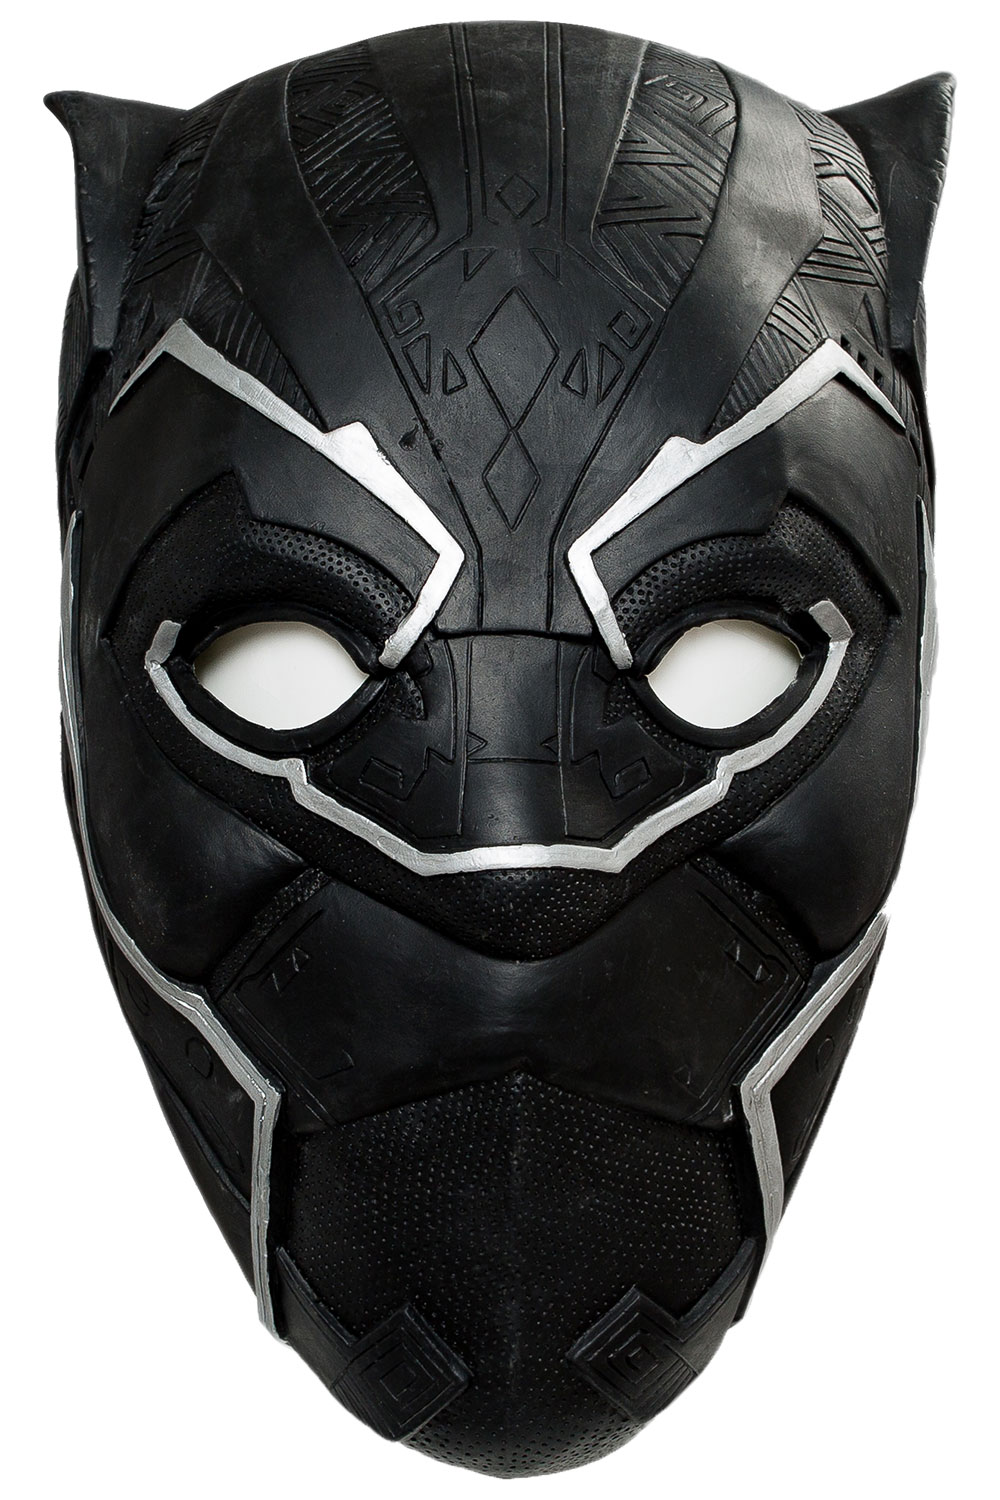 Avengers Infinity War Black Panther Cosplay Mask Face Mask Cosplay Costume Helmet